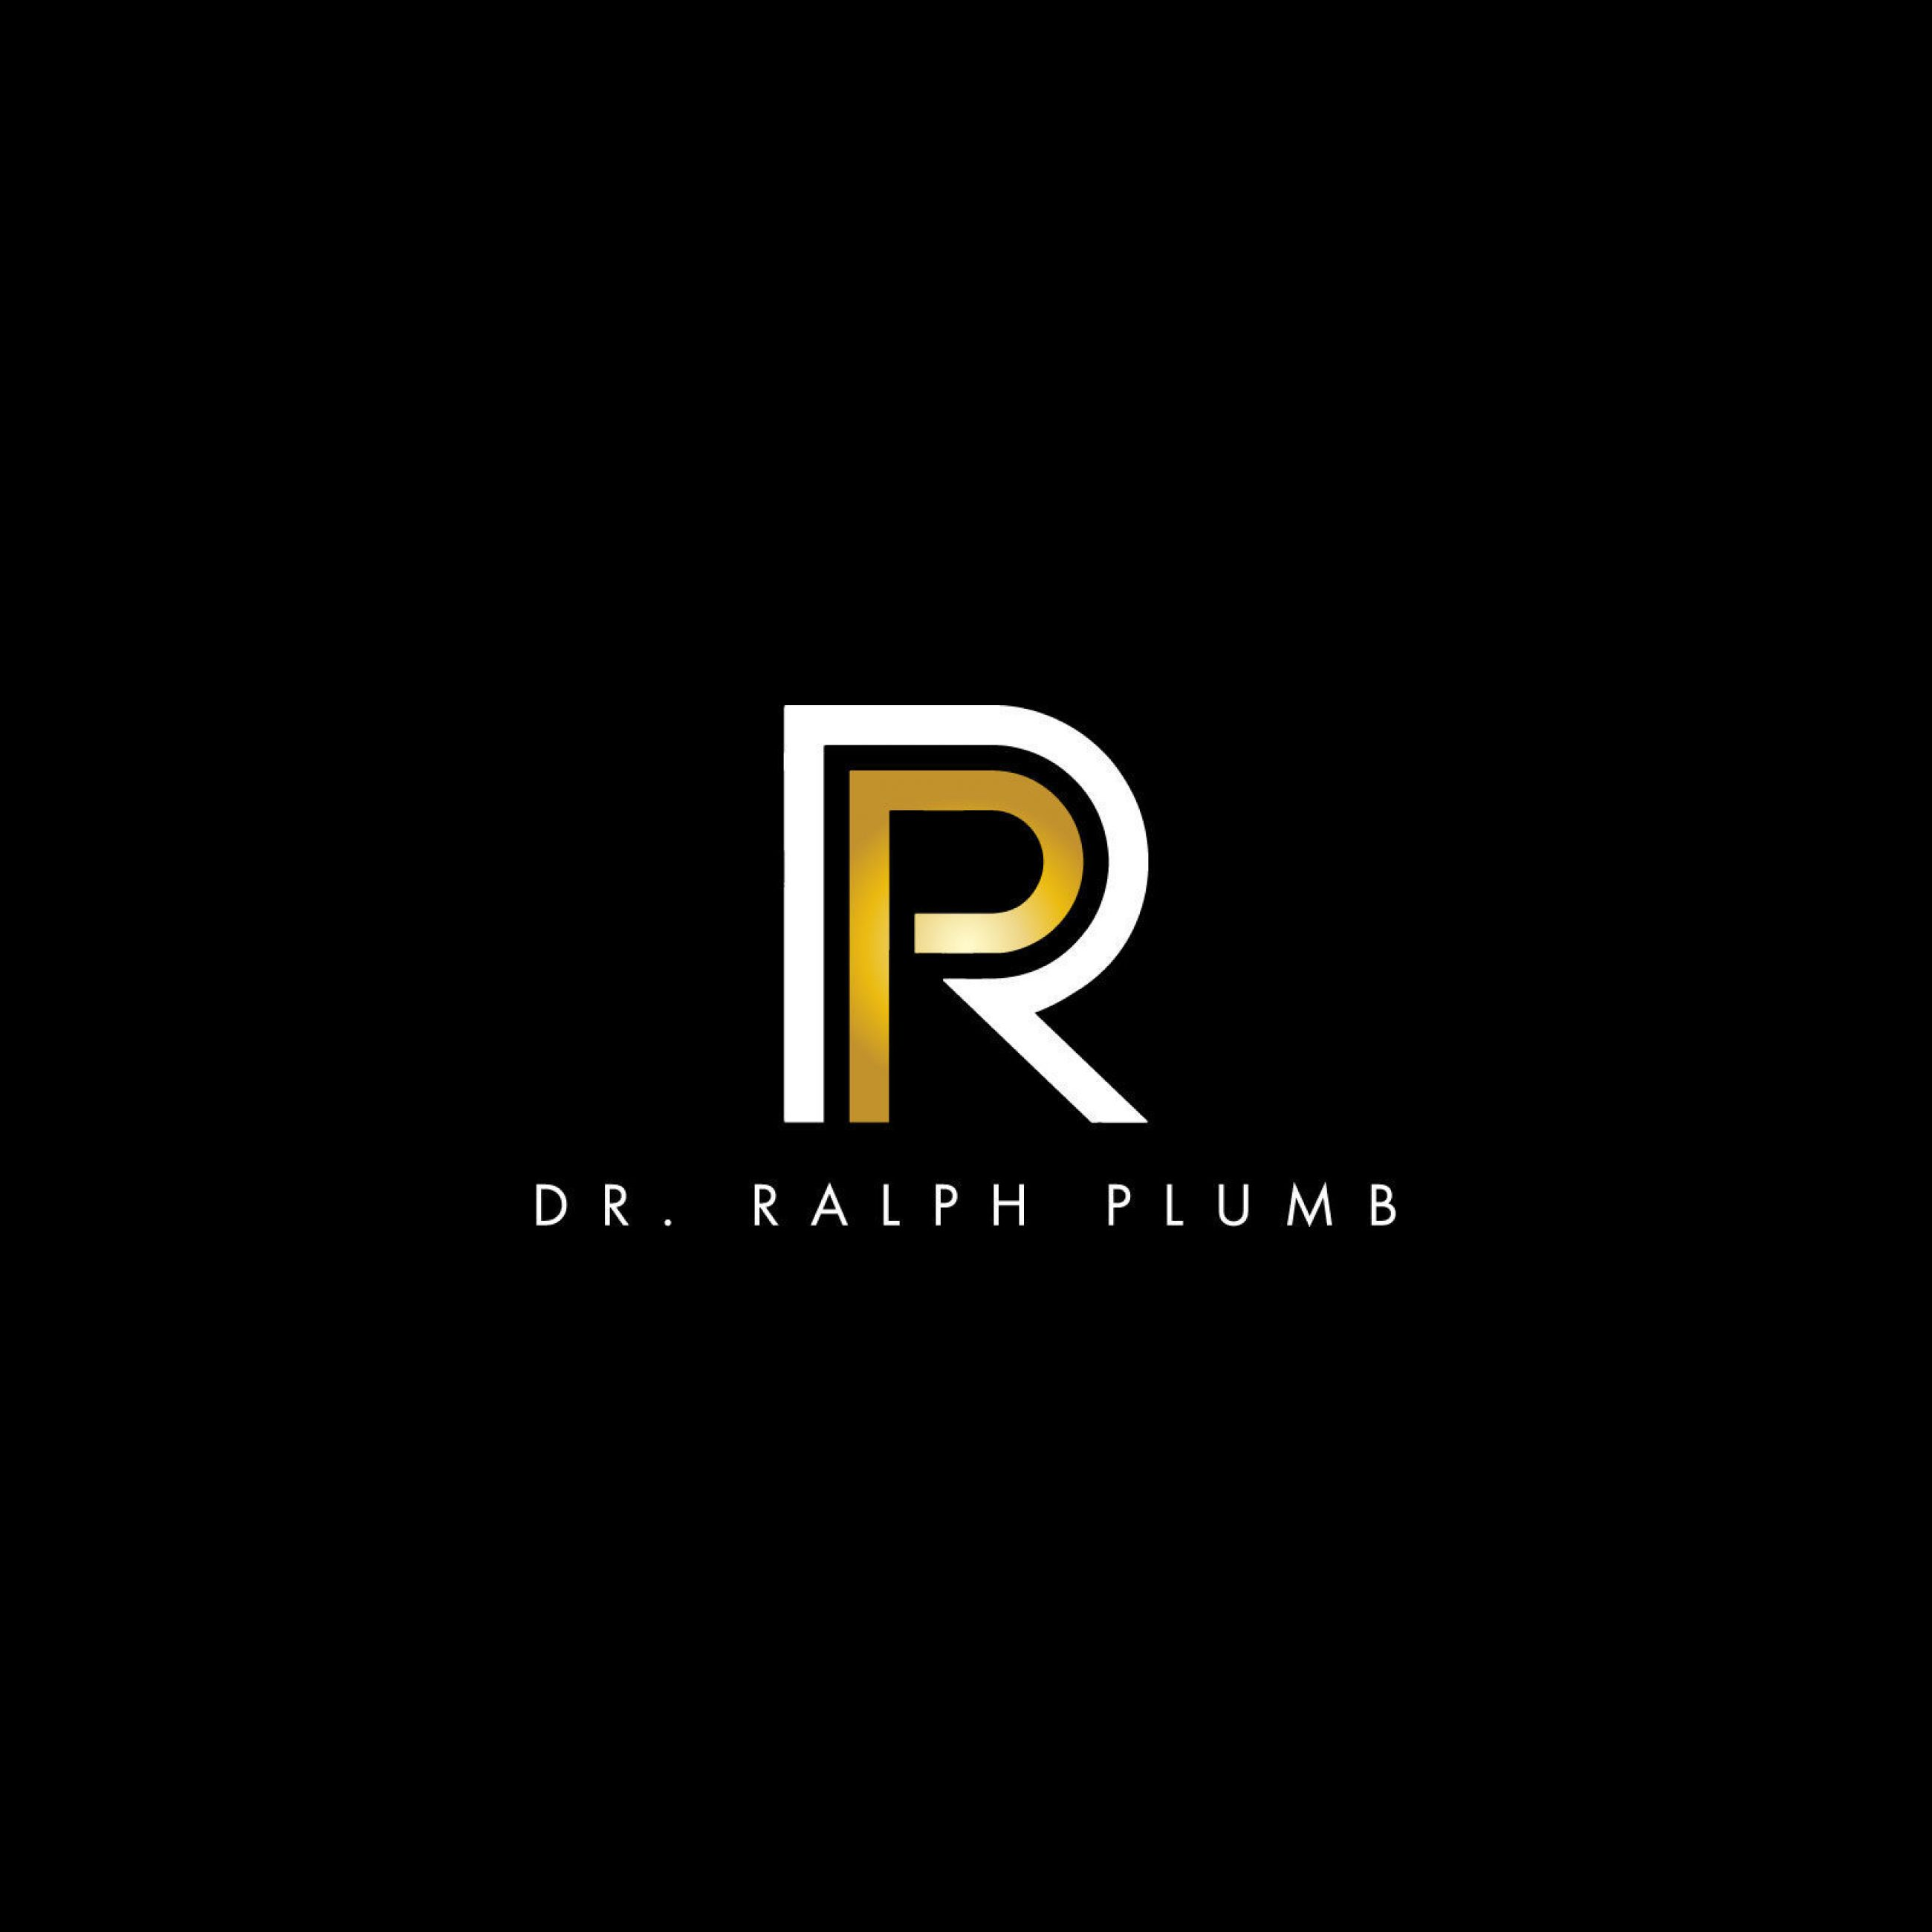 Dr. Ralph Plumb | Your business will thrive again